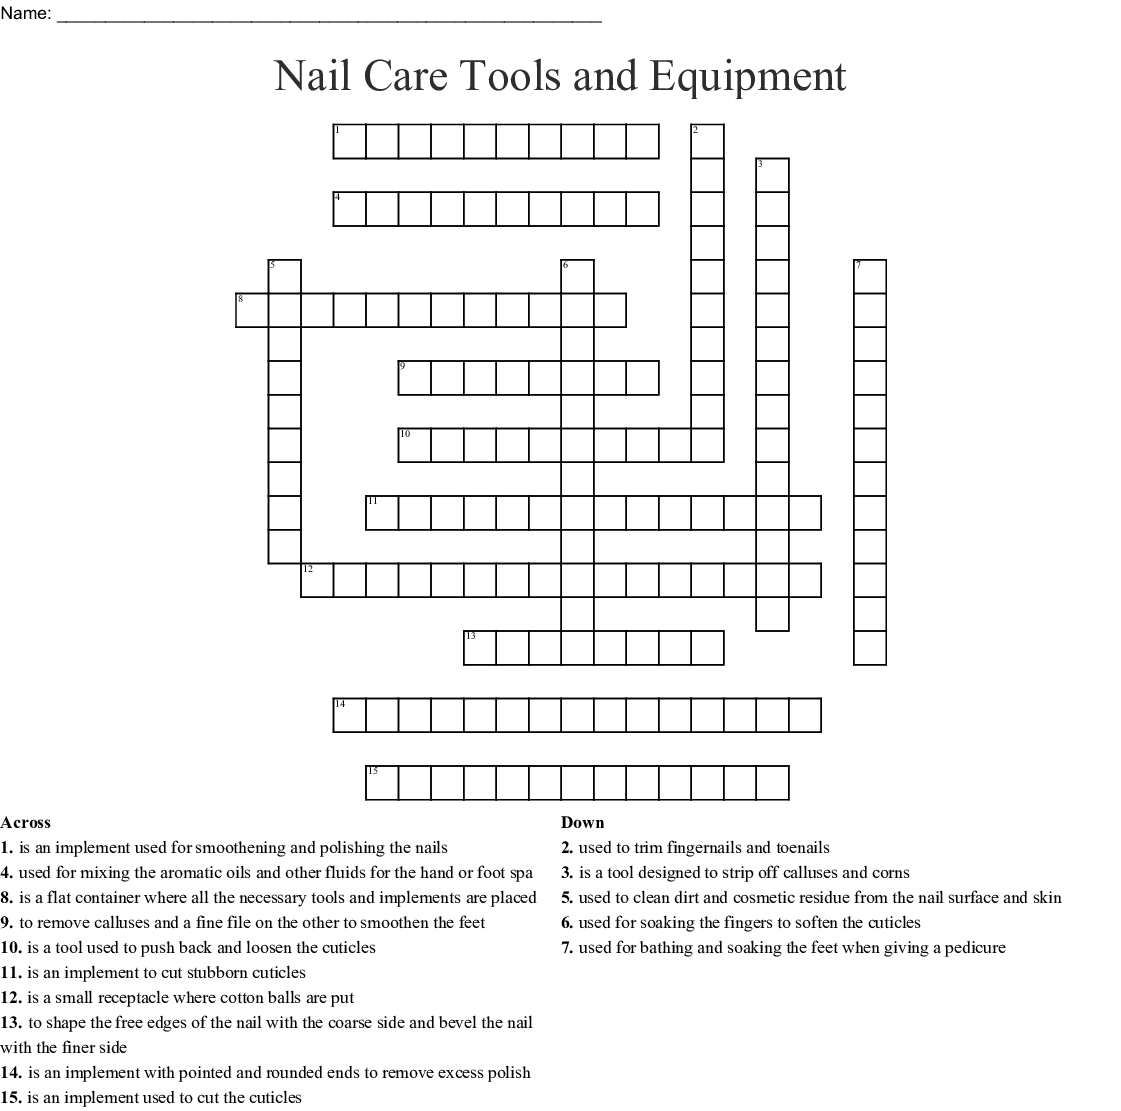 Skin Amp Nail Care Crosswords Word Searches Bingo Cards